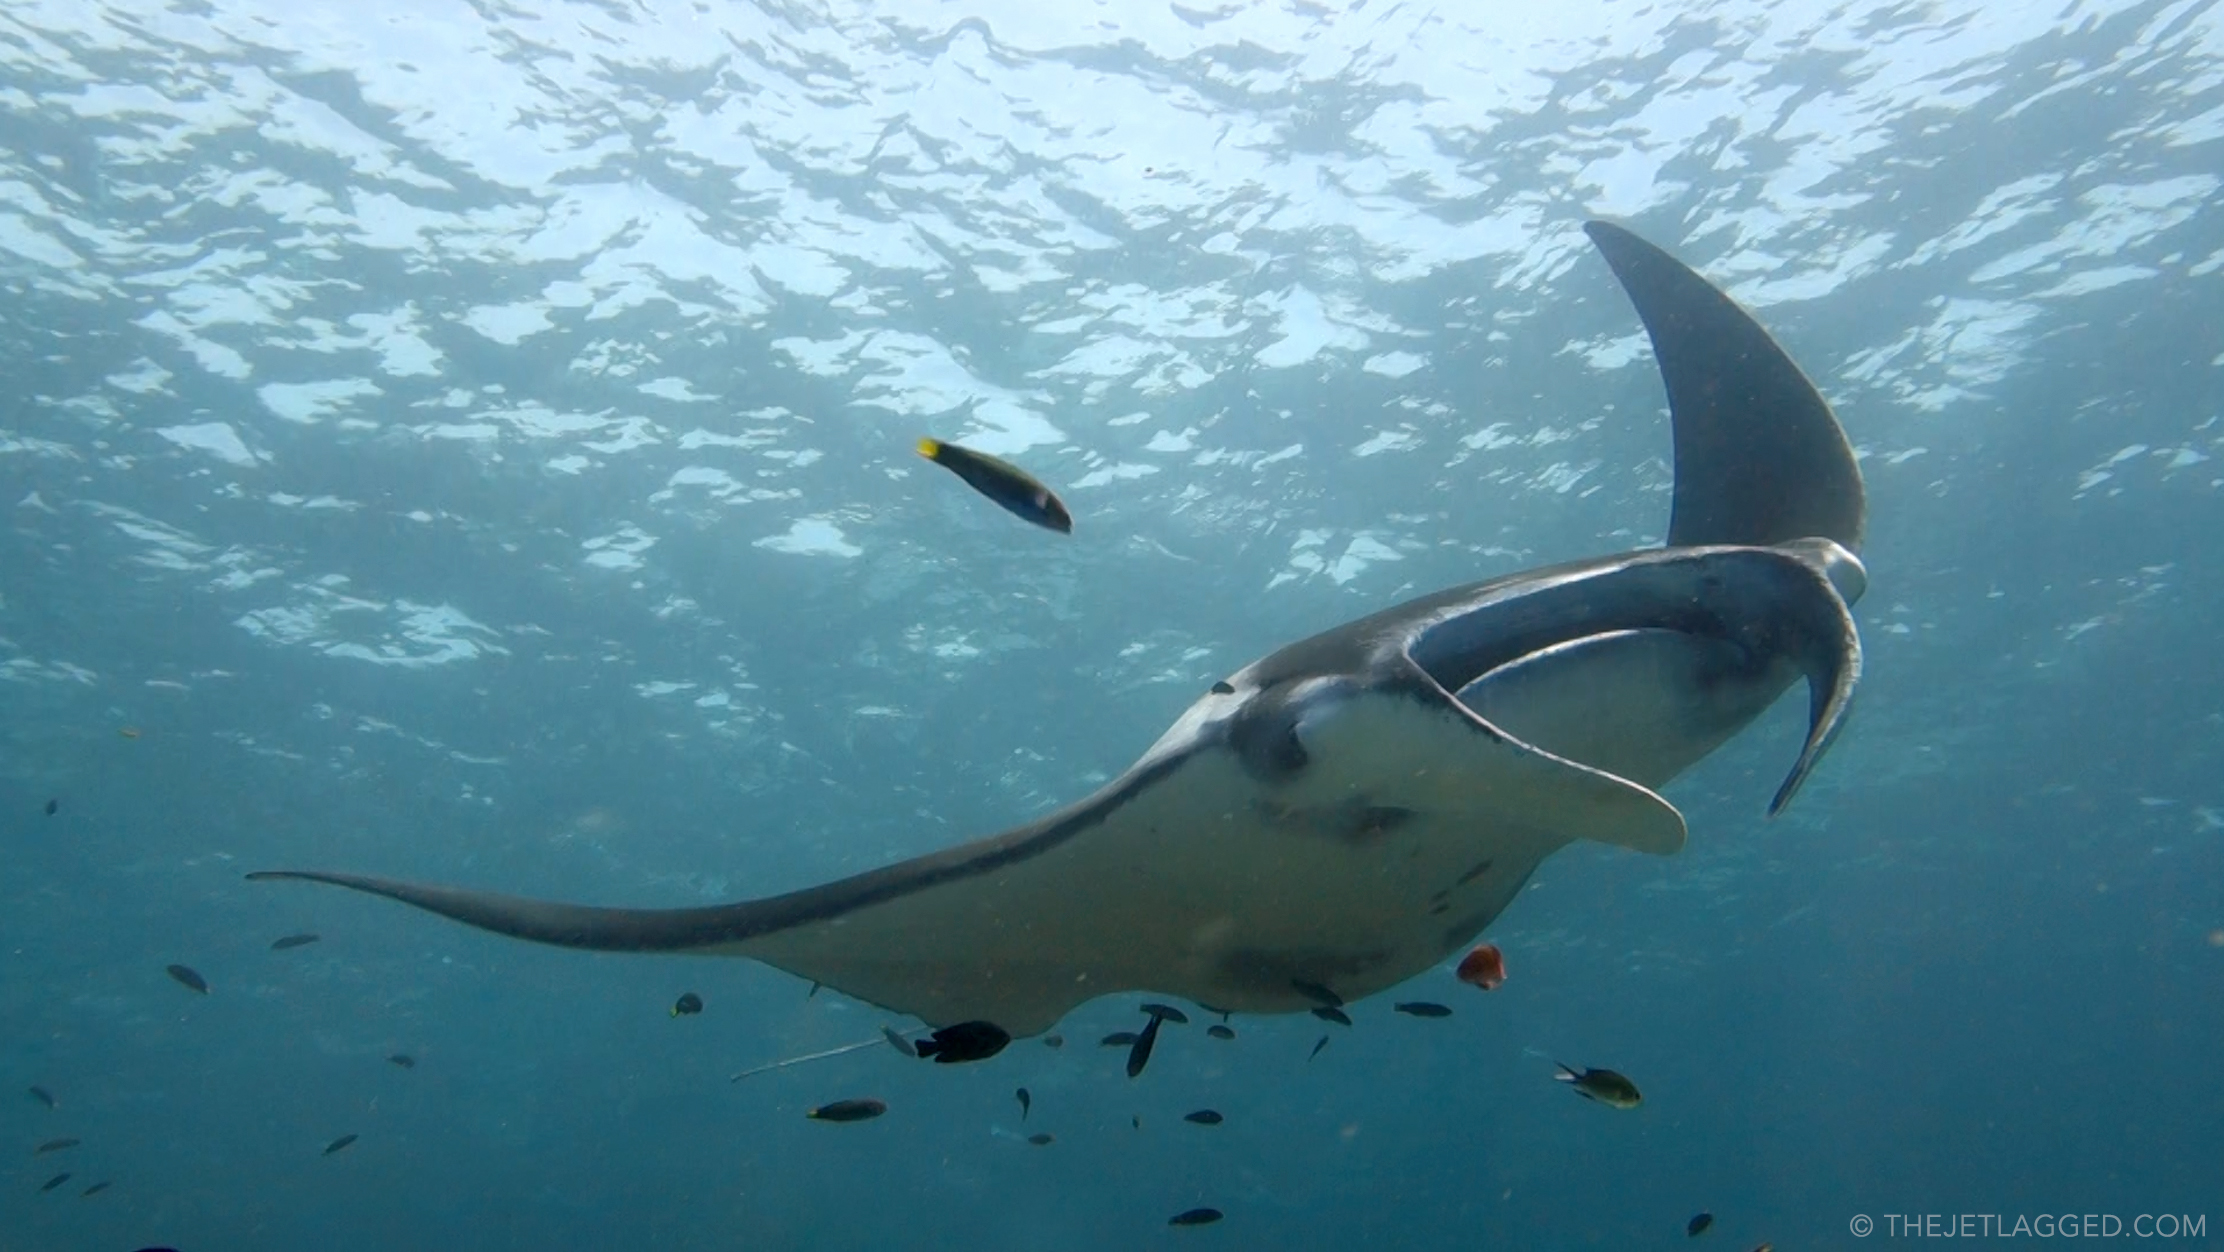 Manta ray cruising through the waters of Komodo